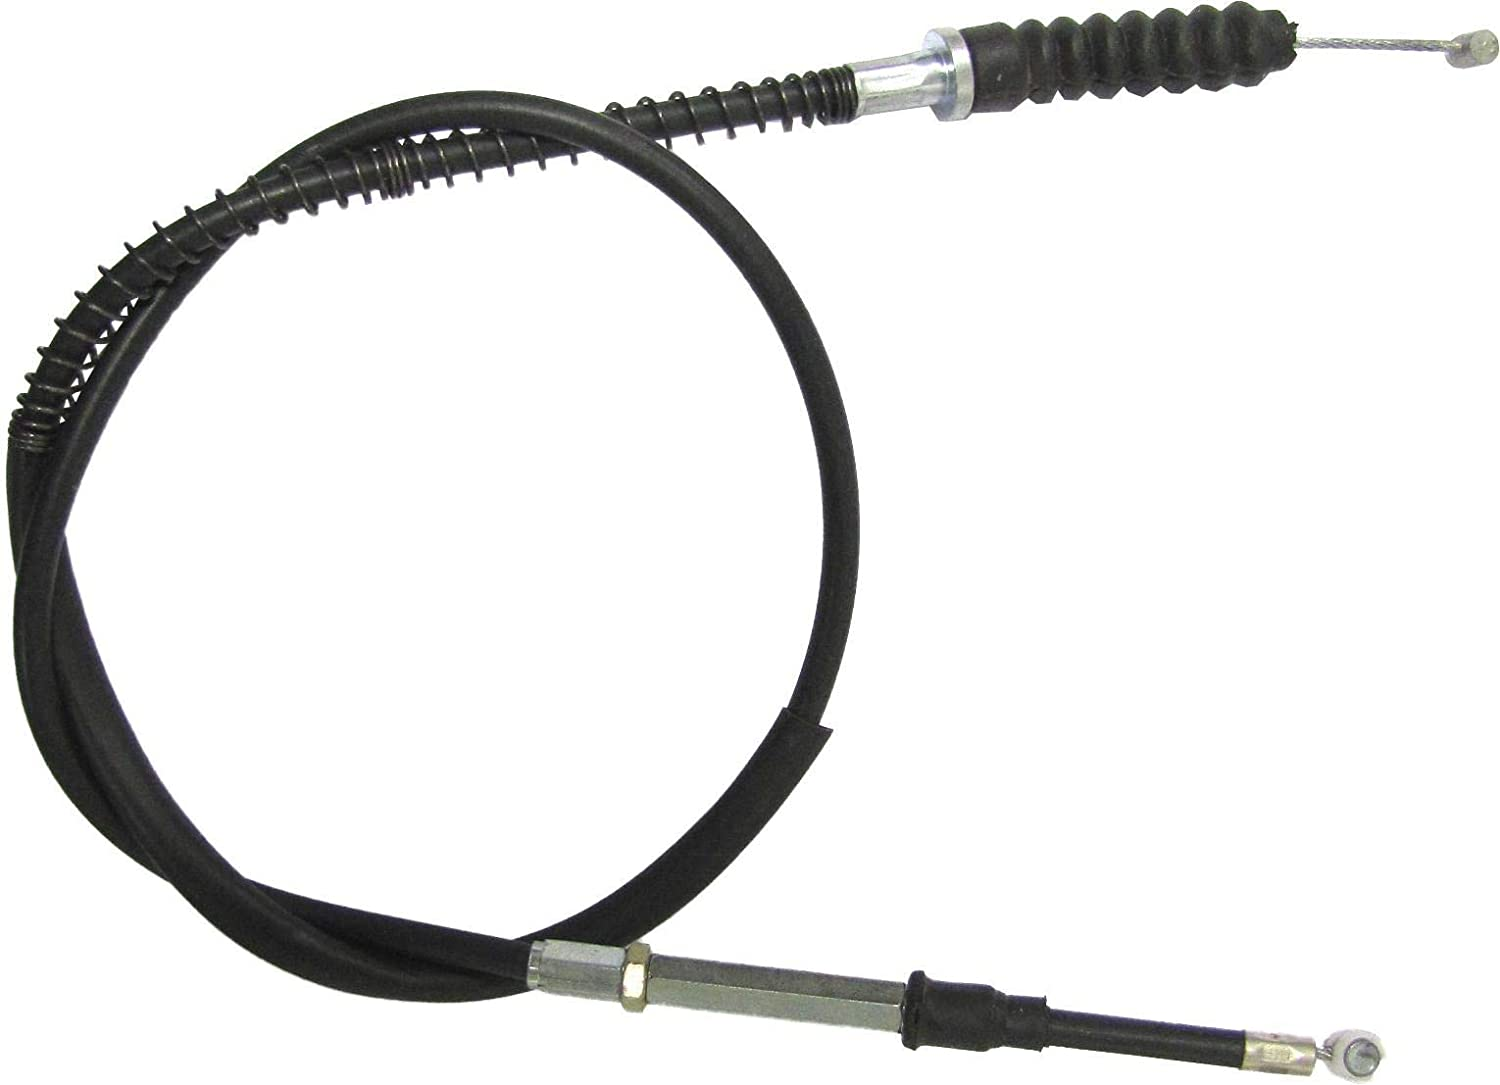 Clutch Cable for Kawasaki KX85 2001-2013